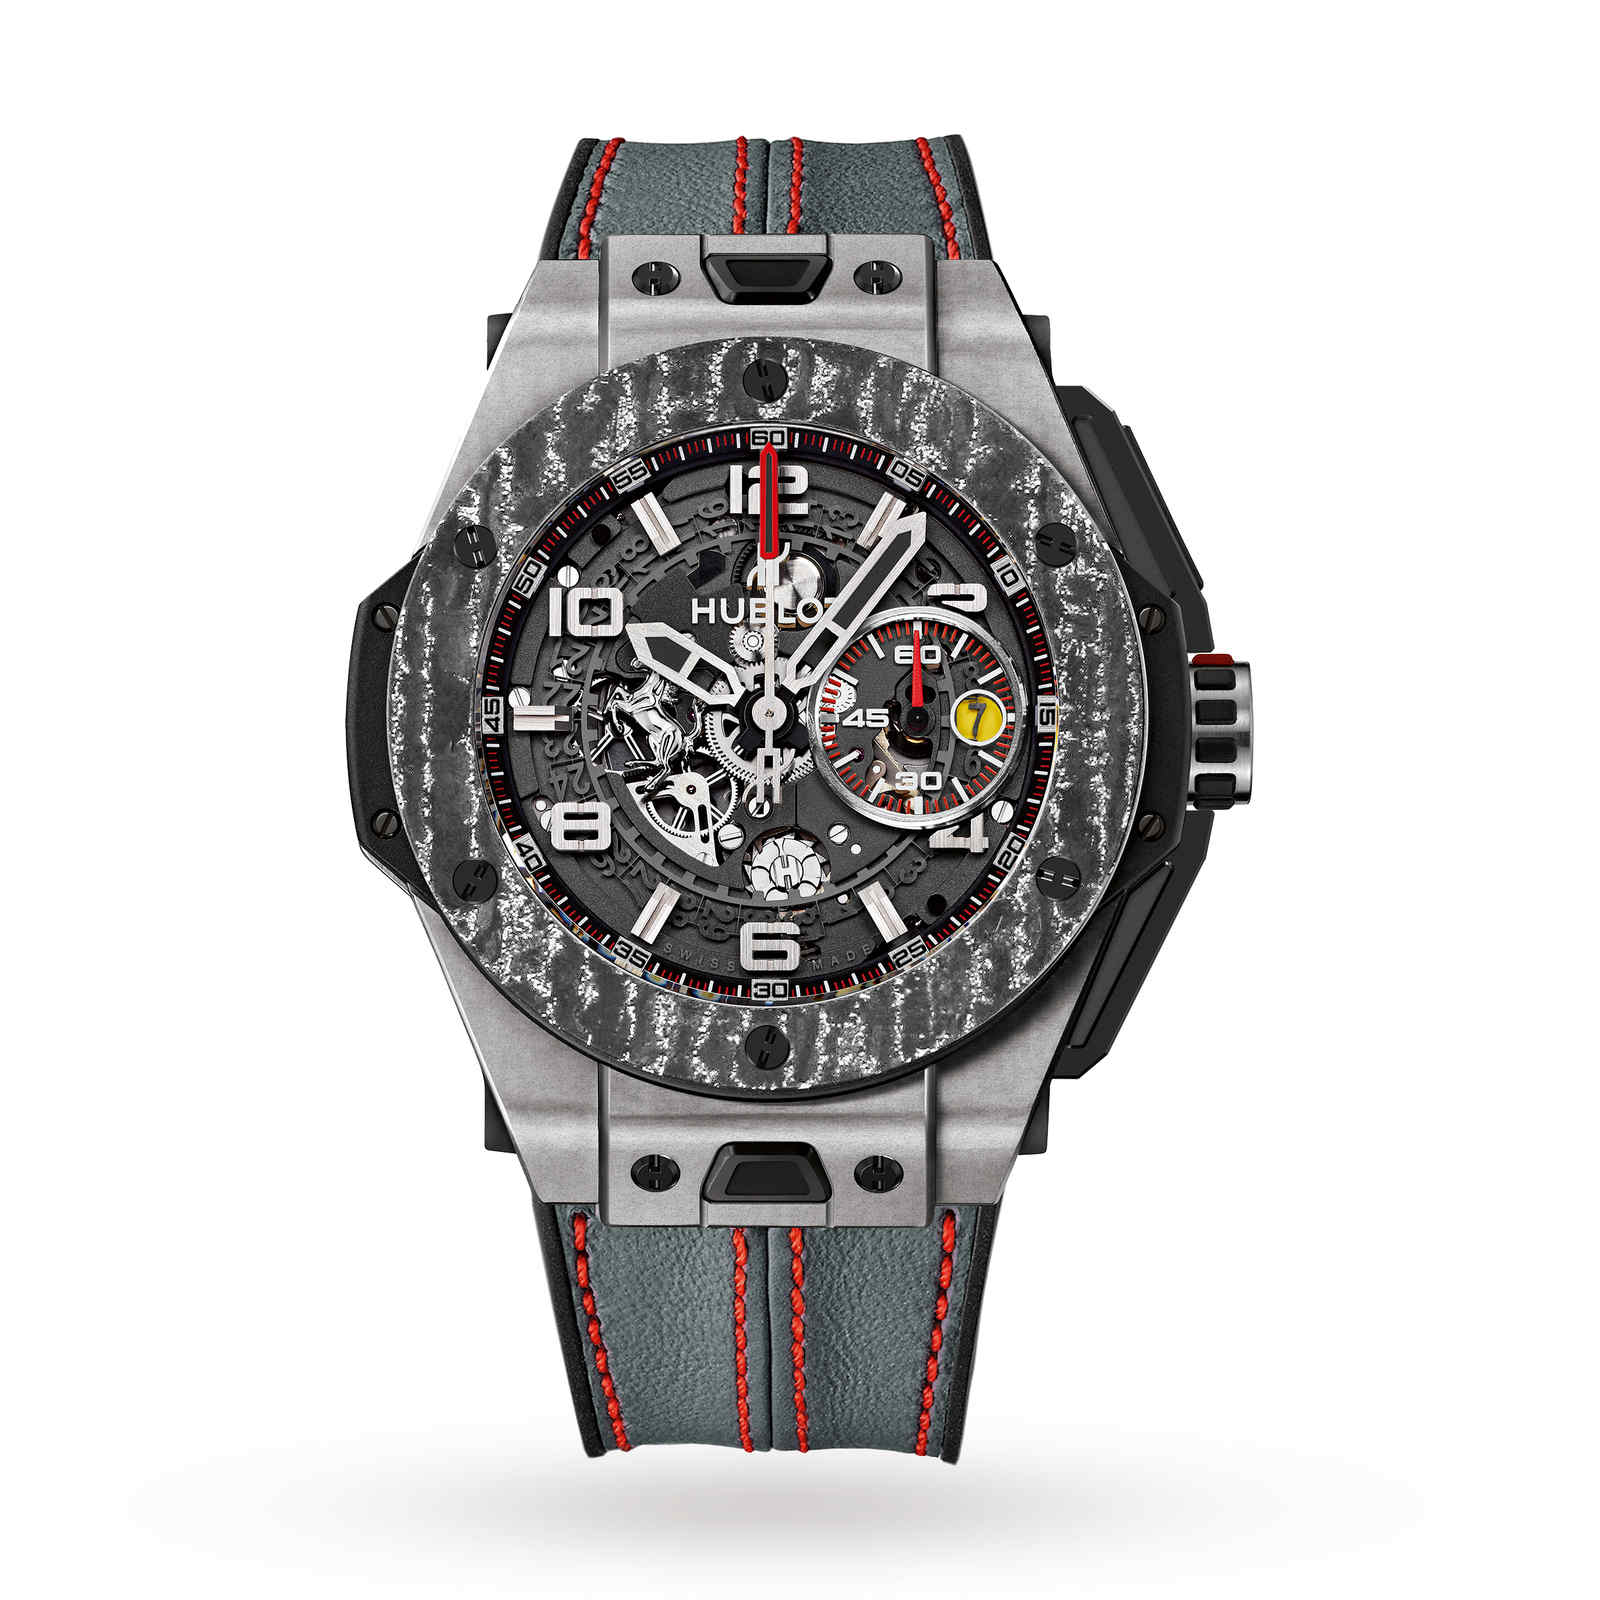 Hublot Big Bang Ferrari Titanium Carbon Mens Watch